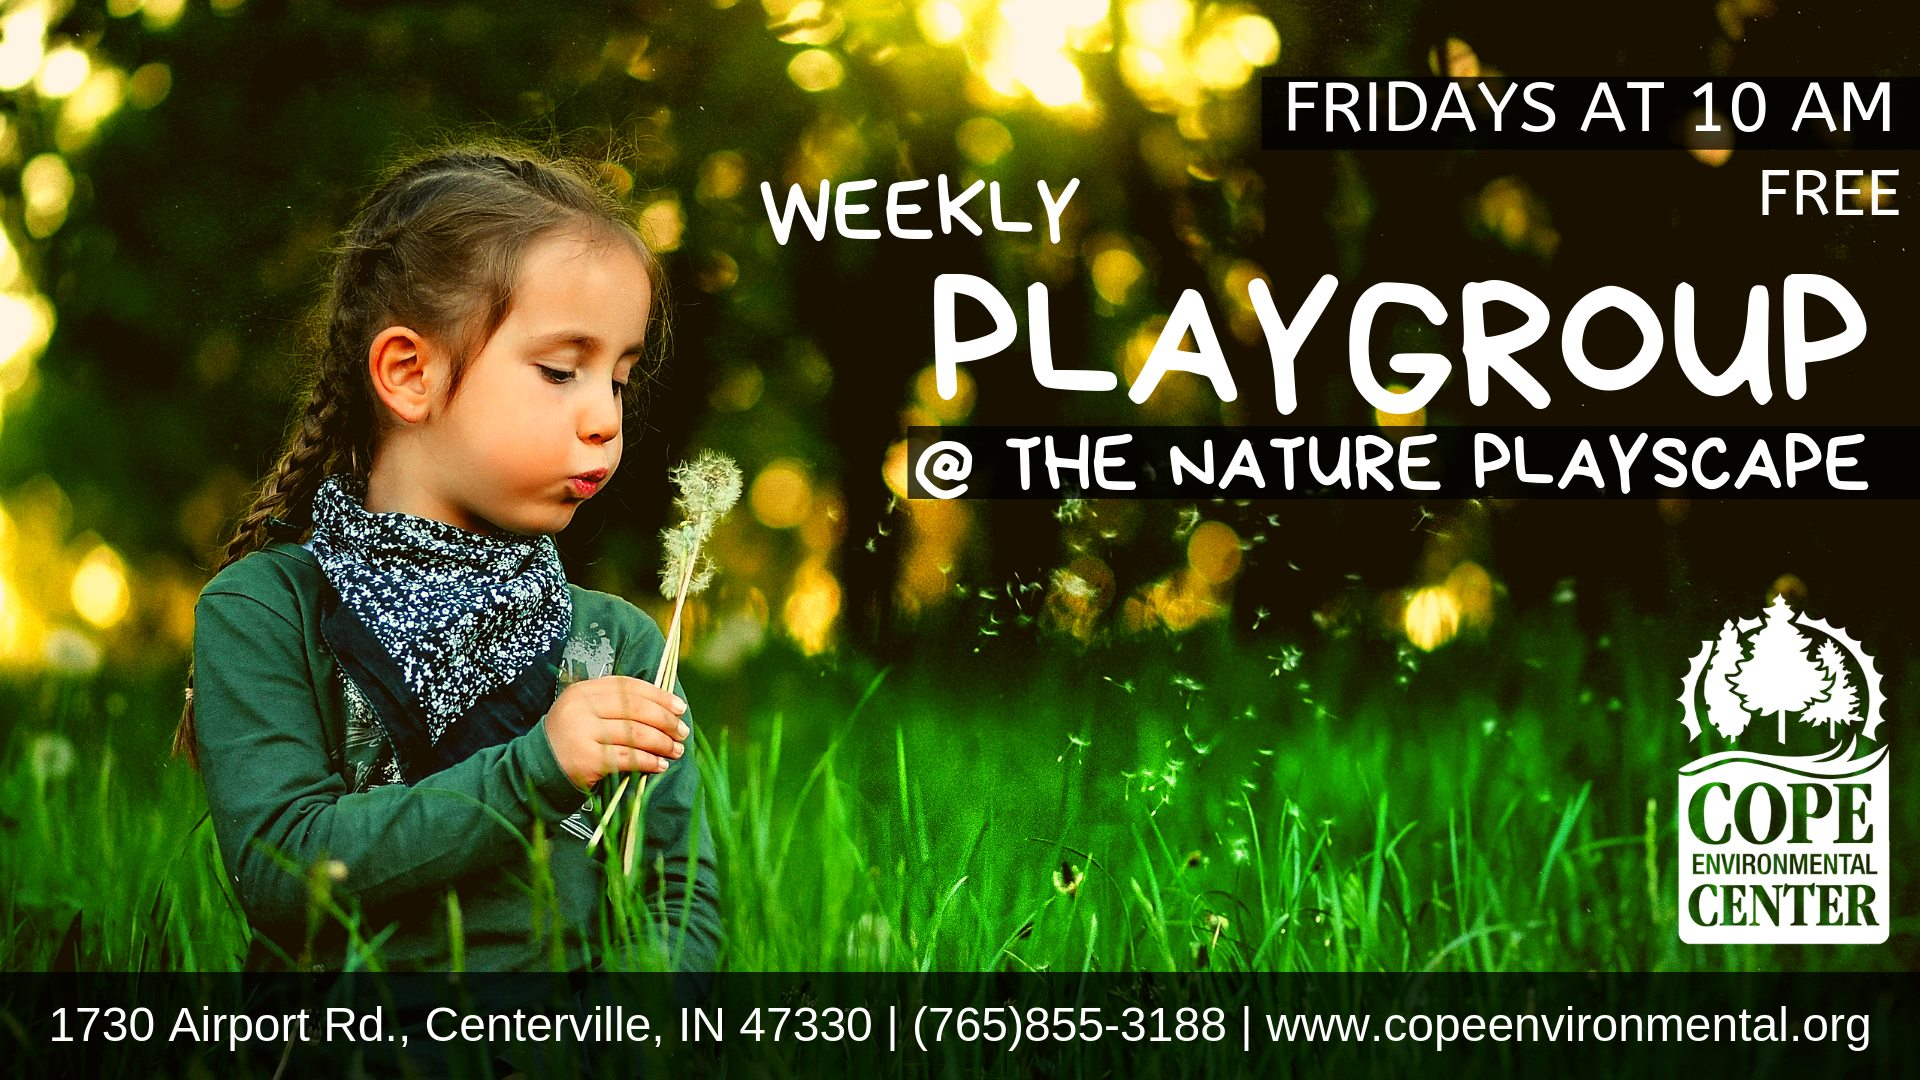 Weekly Playgroup at the Nature Playscape